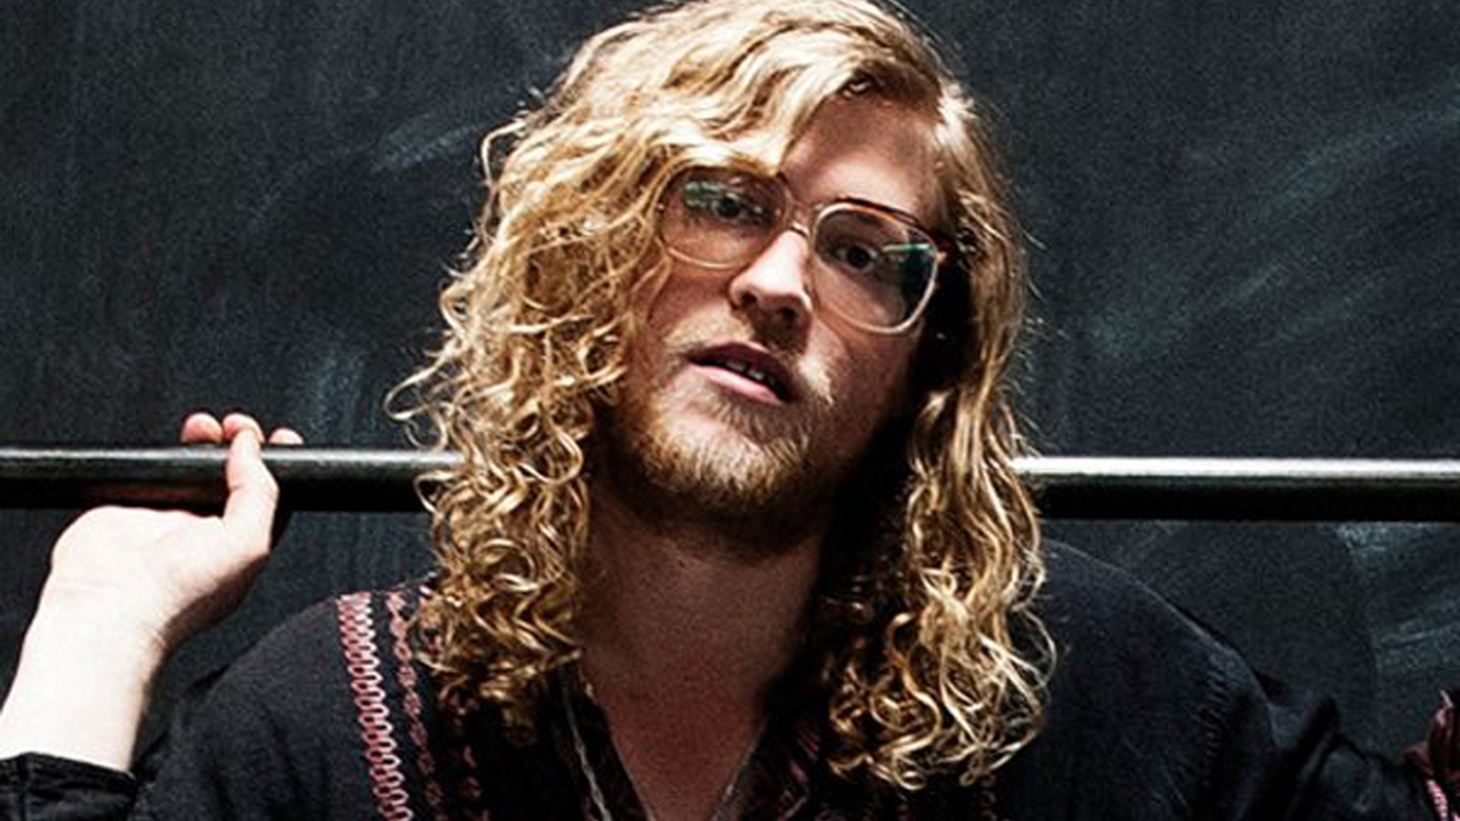 Allen Stone is committed to making uncompromisingly soulful songs.  A deluxe edition of his last album, Radius, will be released on March 25th.